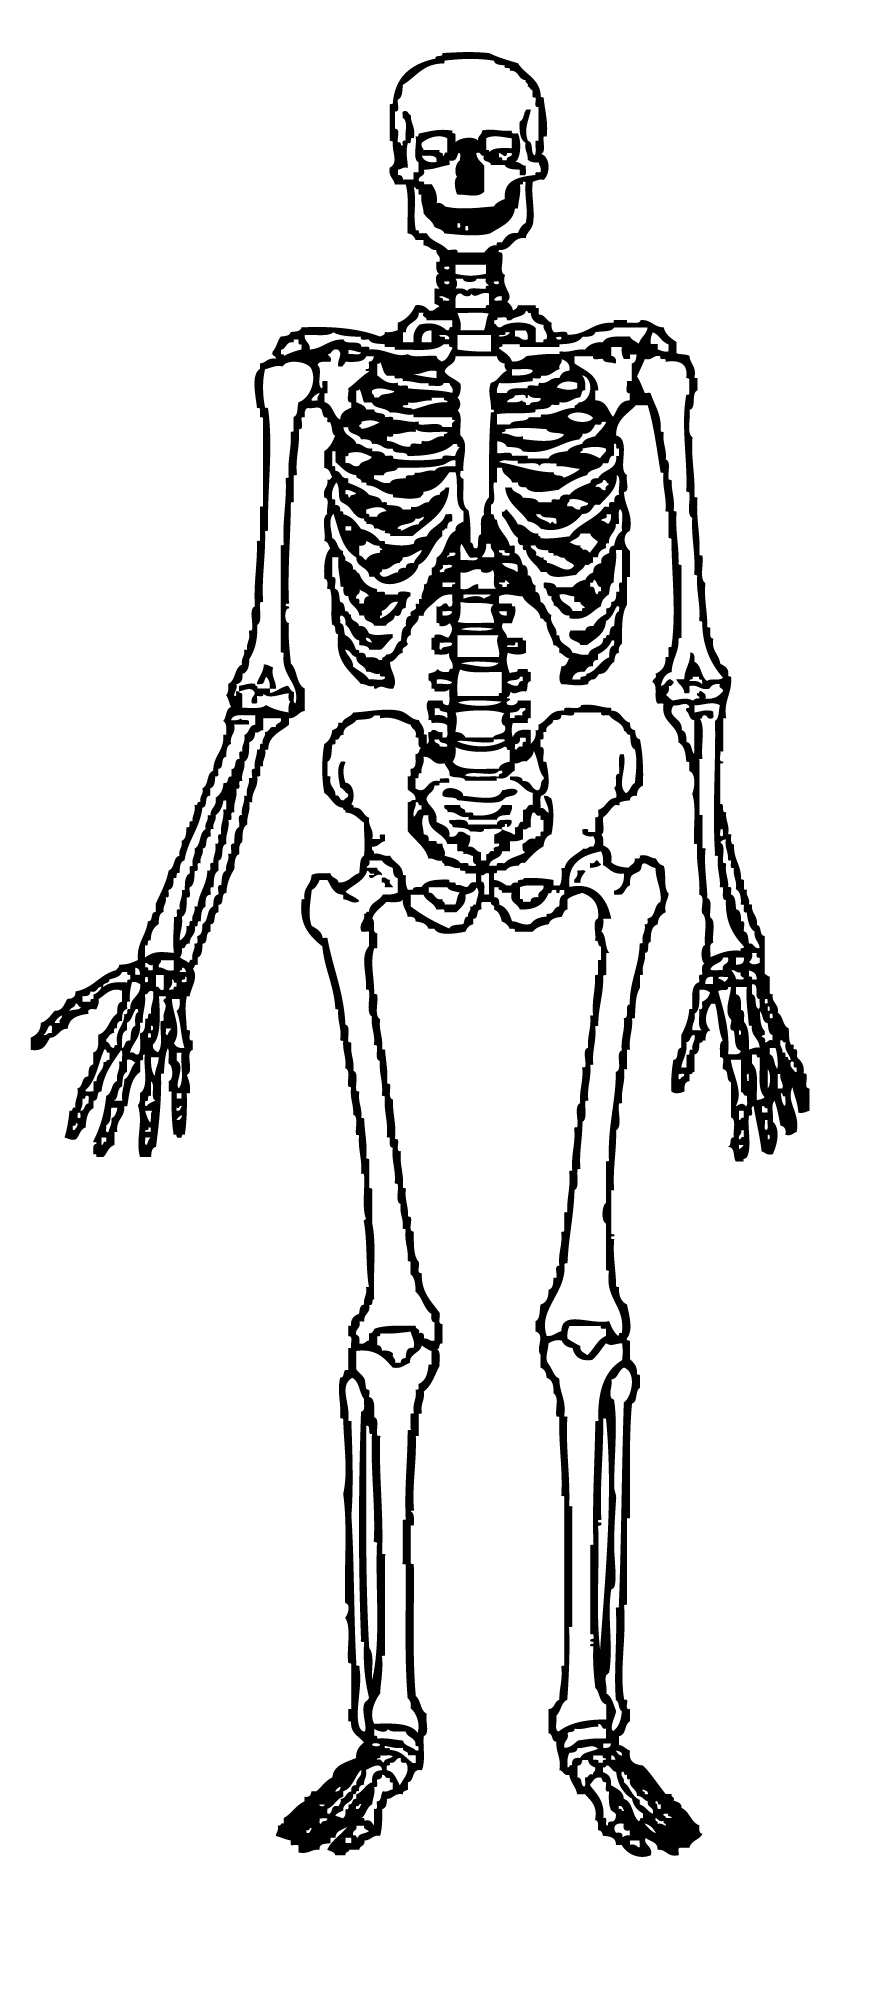 Free clip art pictures. Skeleton clipart